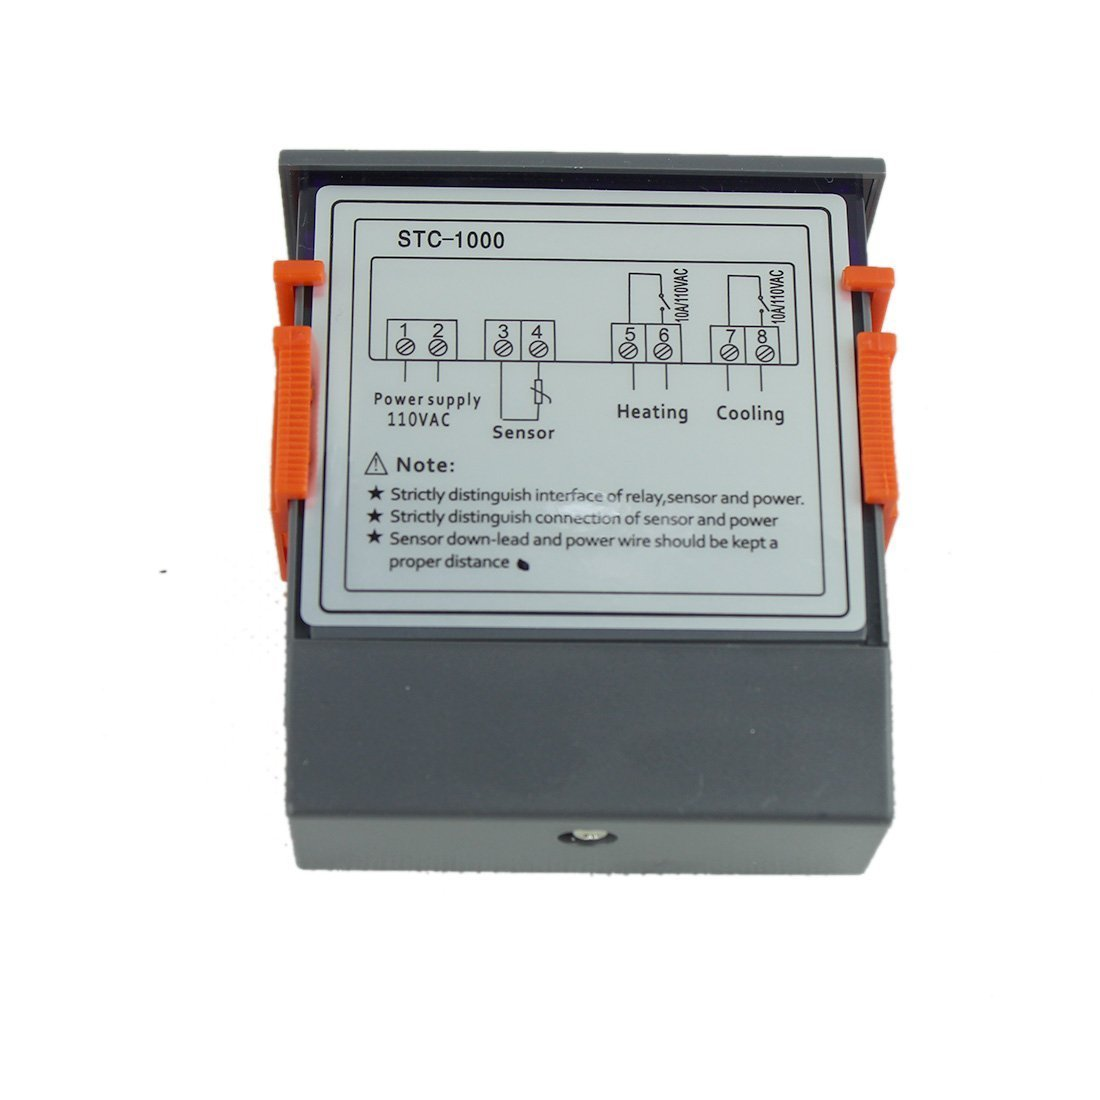 Lerway 110v All Purpose Temperature Control Controller Based Dual Power And Measurement Circuit With Sensor 2 Relay Output Thermostat Stc 1000 Home Improvement